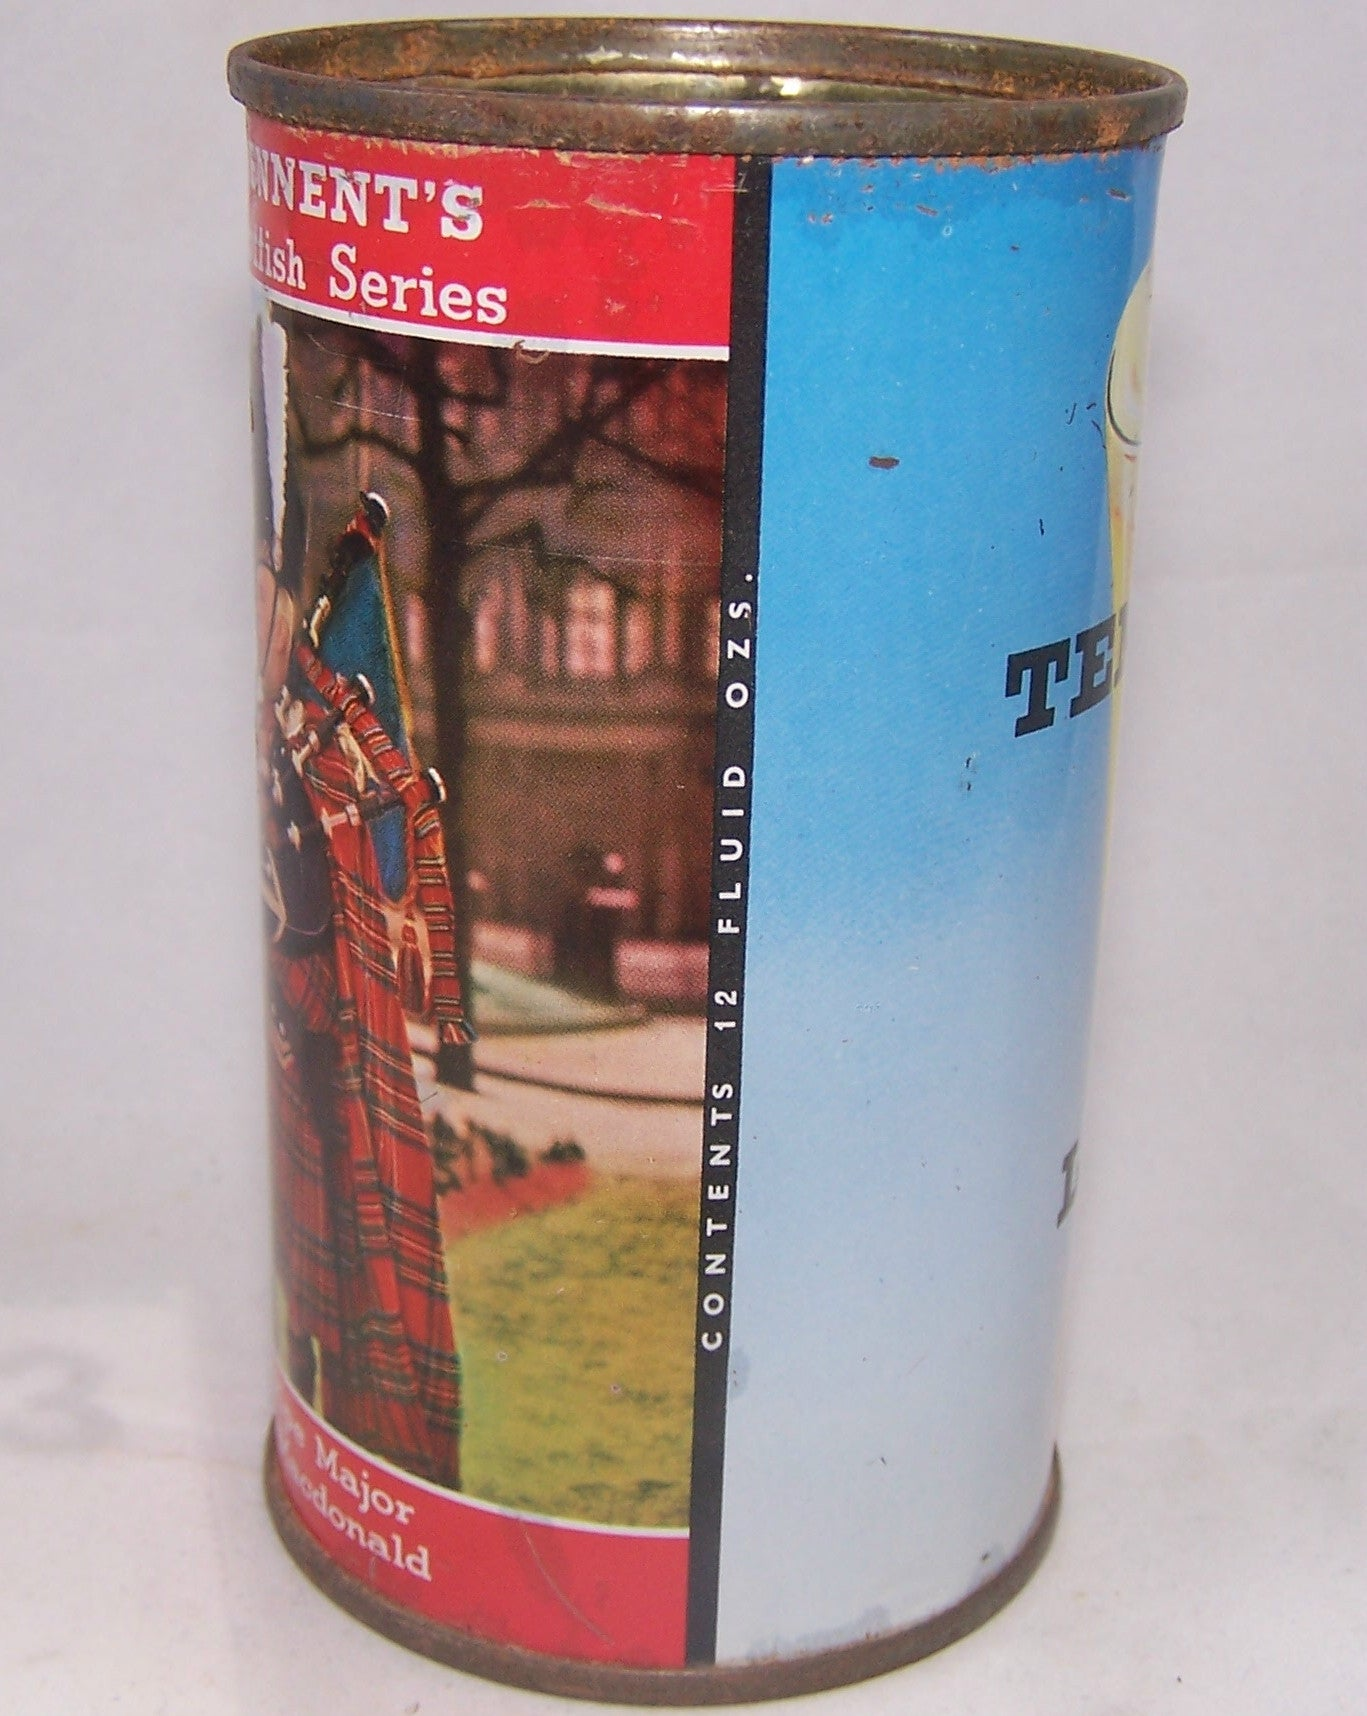 Tennent's Lager Scottish Series, (Pipe Major) Grade 1- Sold on 06/02/17